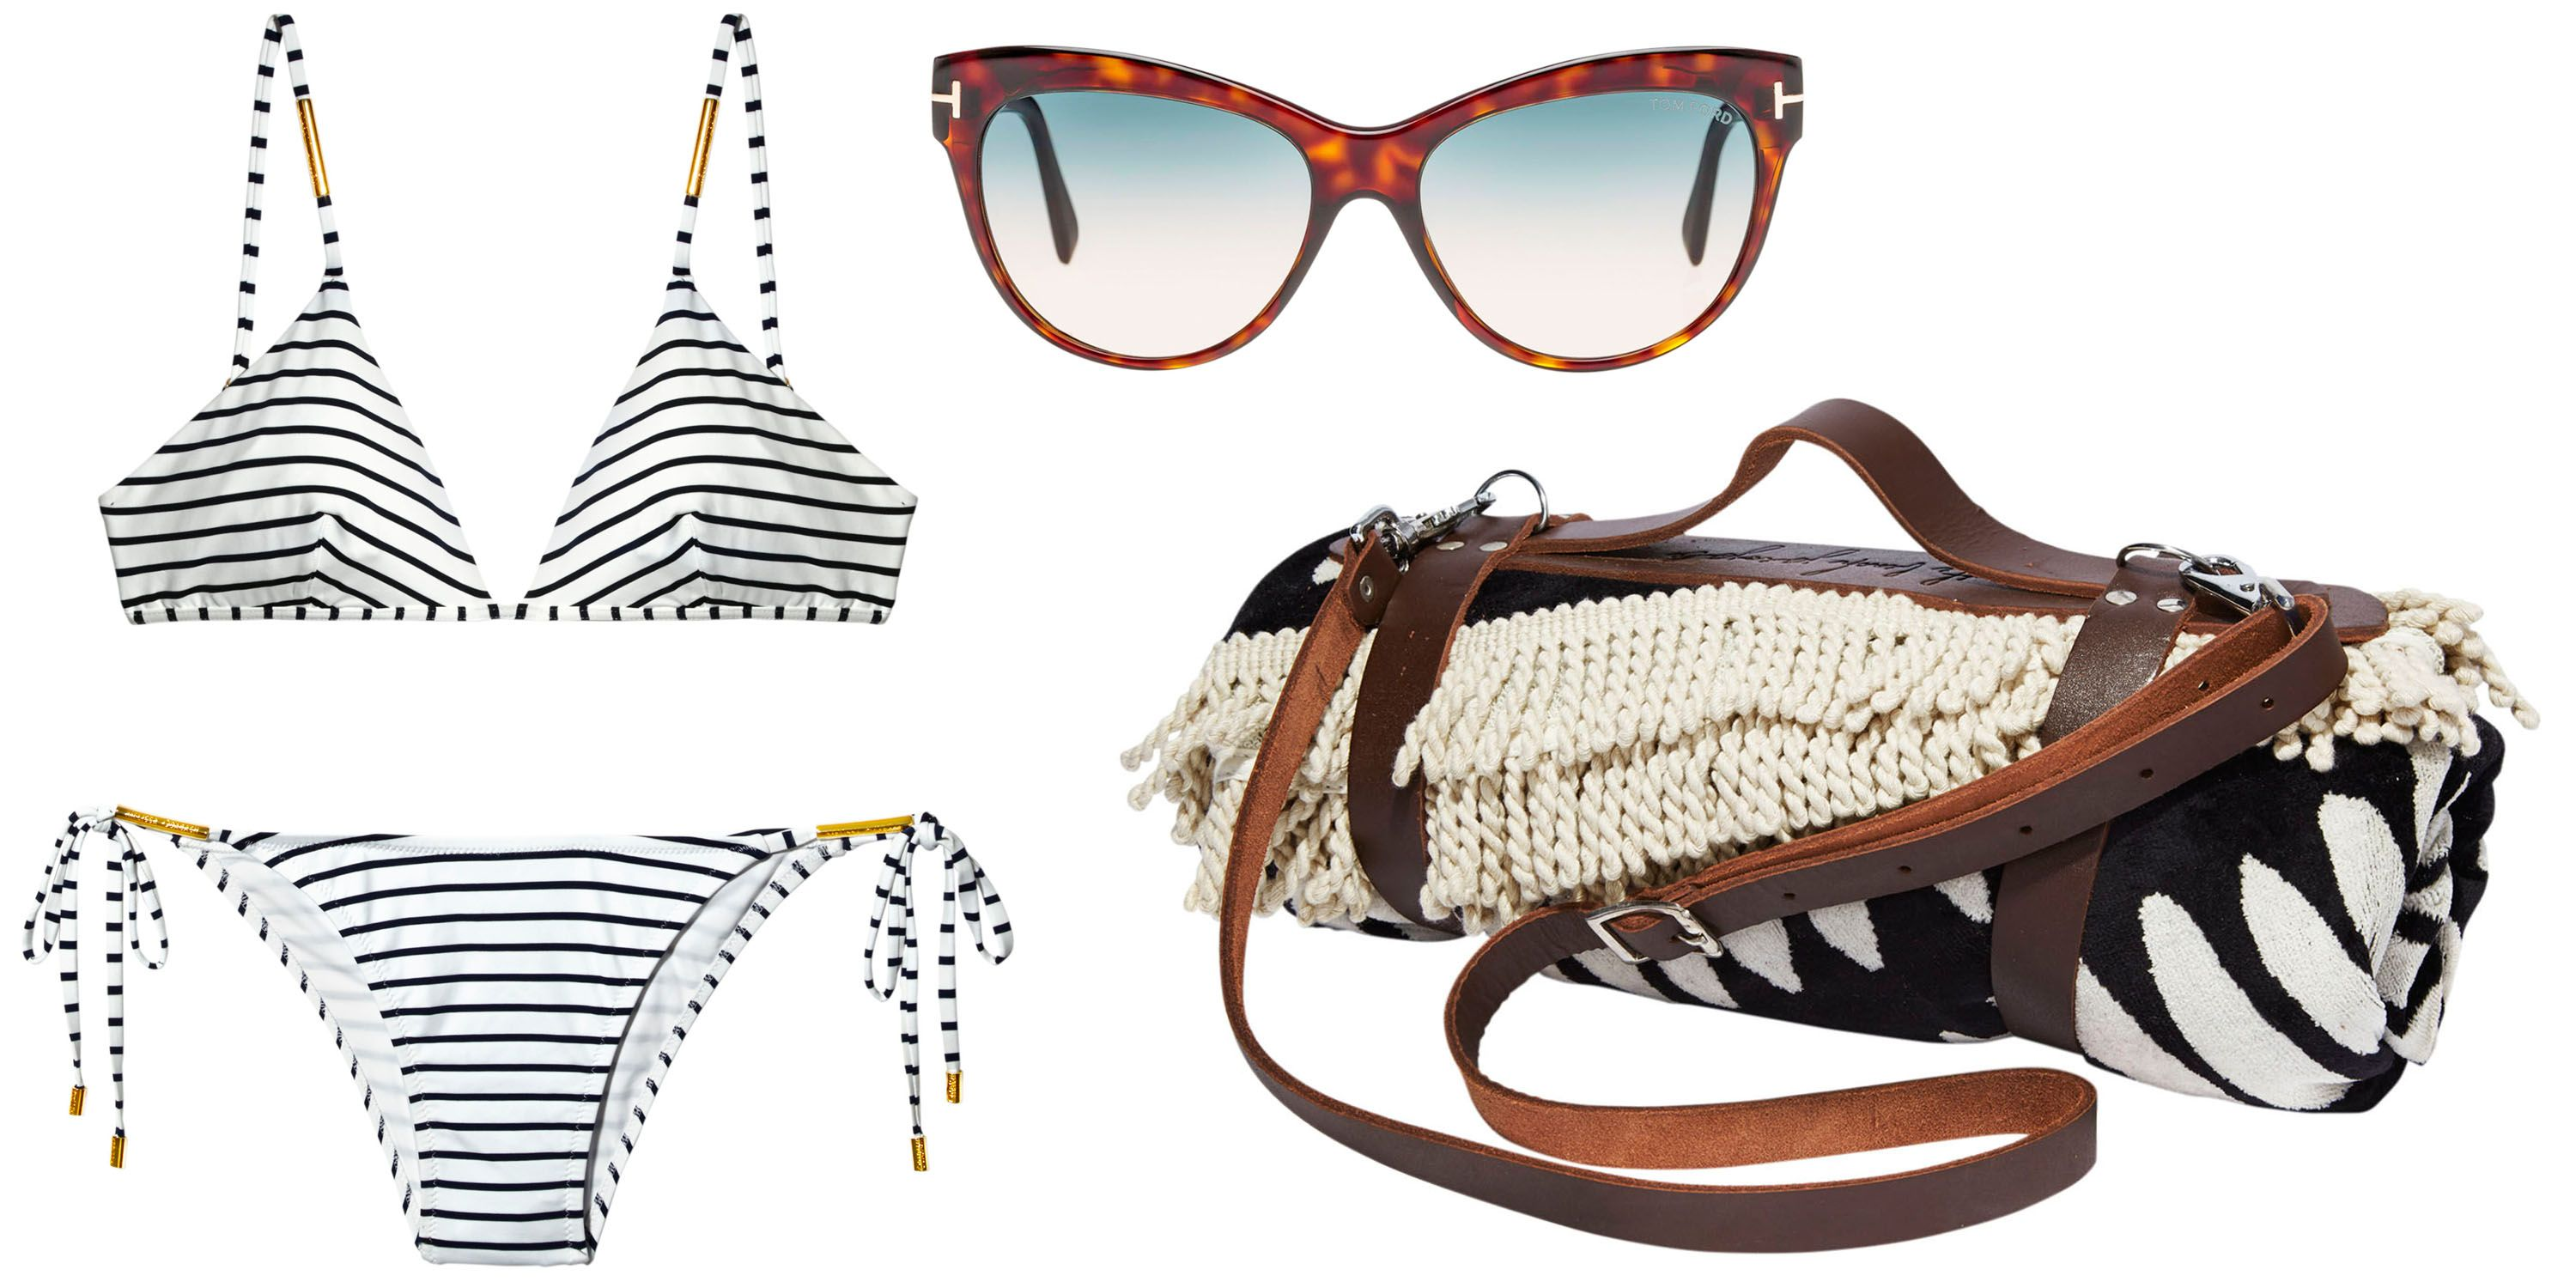 "<p>""The Beach People round towel and leather carrier, Tom Ford sunglasses, and a Melissa Odabash striped bikini.""</p><p><strong>Melissa Odabash </strong>bikini, $234, <a href=""http://www.shopbop.com/"">shopbop.com</a>&#x3B; <strong>Tom Ford</strong> sunglasses, $390, 888-TOM-FORD<span class=""redactor-invisible-space"">&#x3B; <strong>The Beach People </strong>towel, $110, and leather carrier, $39, Bergdorf Goodman&#x3B; 888-774-2424.<span class=""redactor-invisible-space""></span></span></p>"